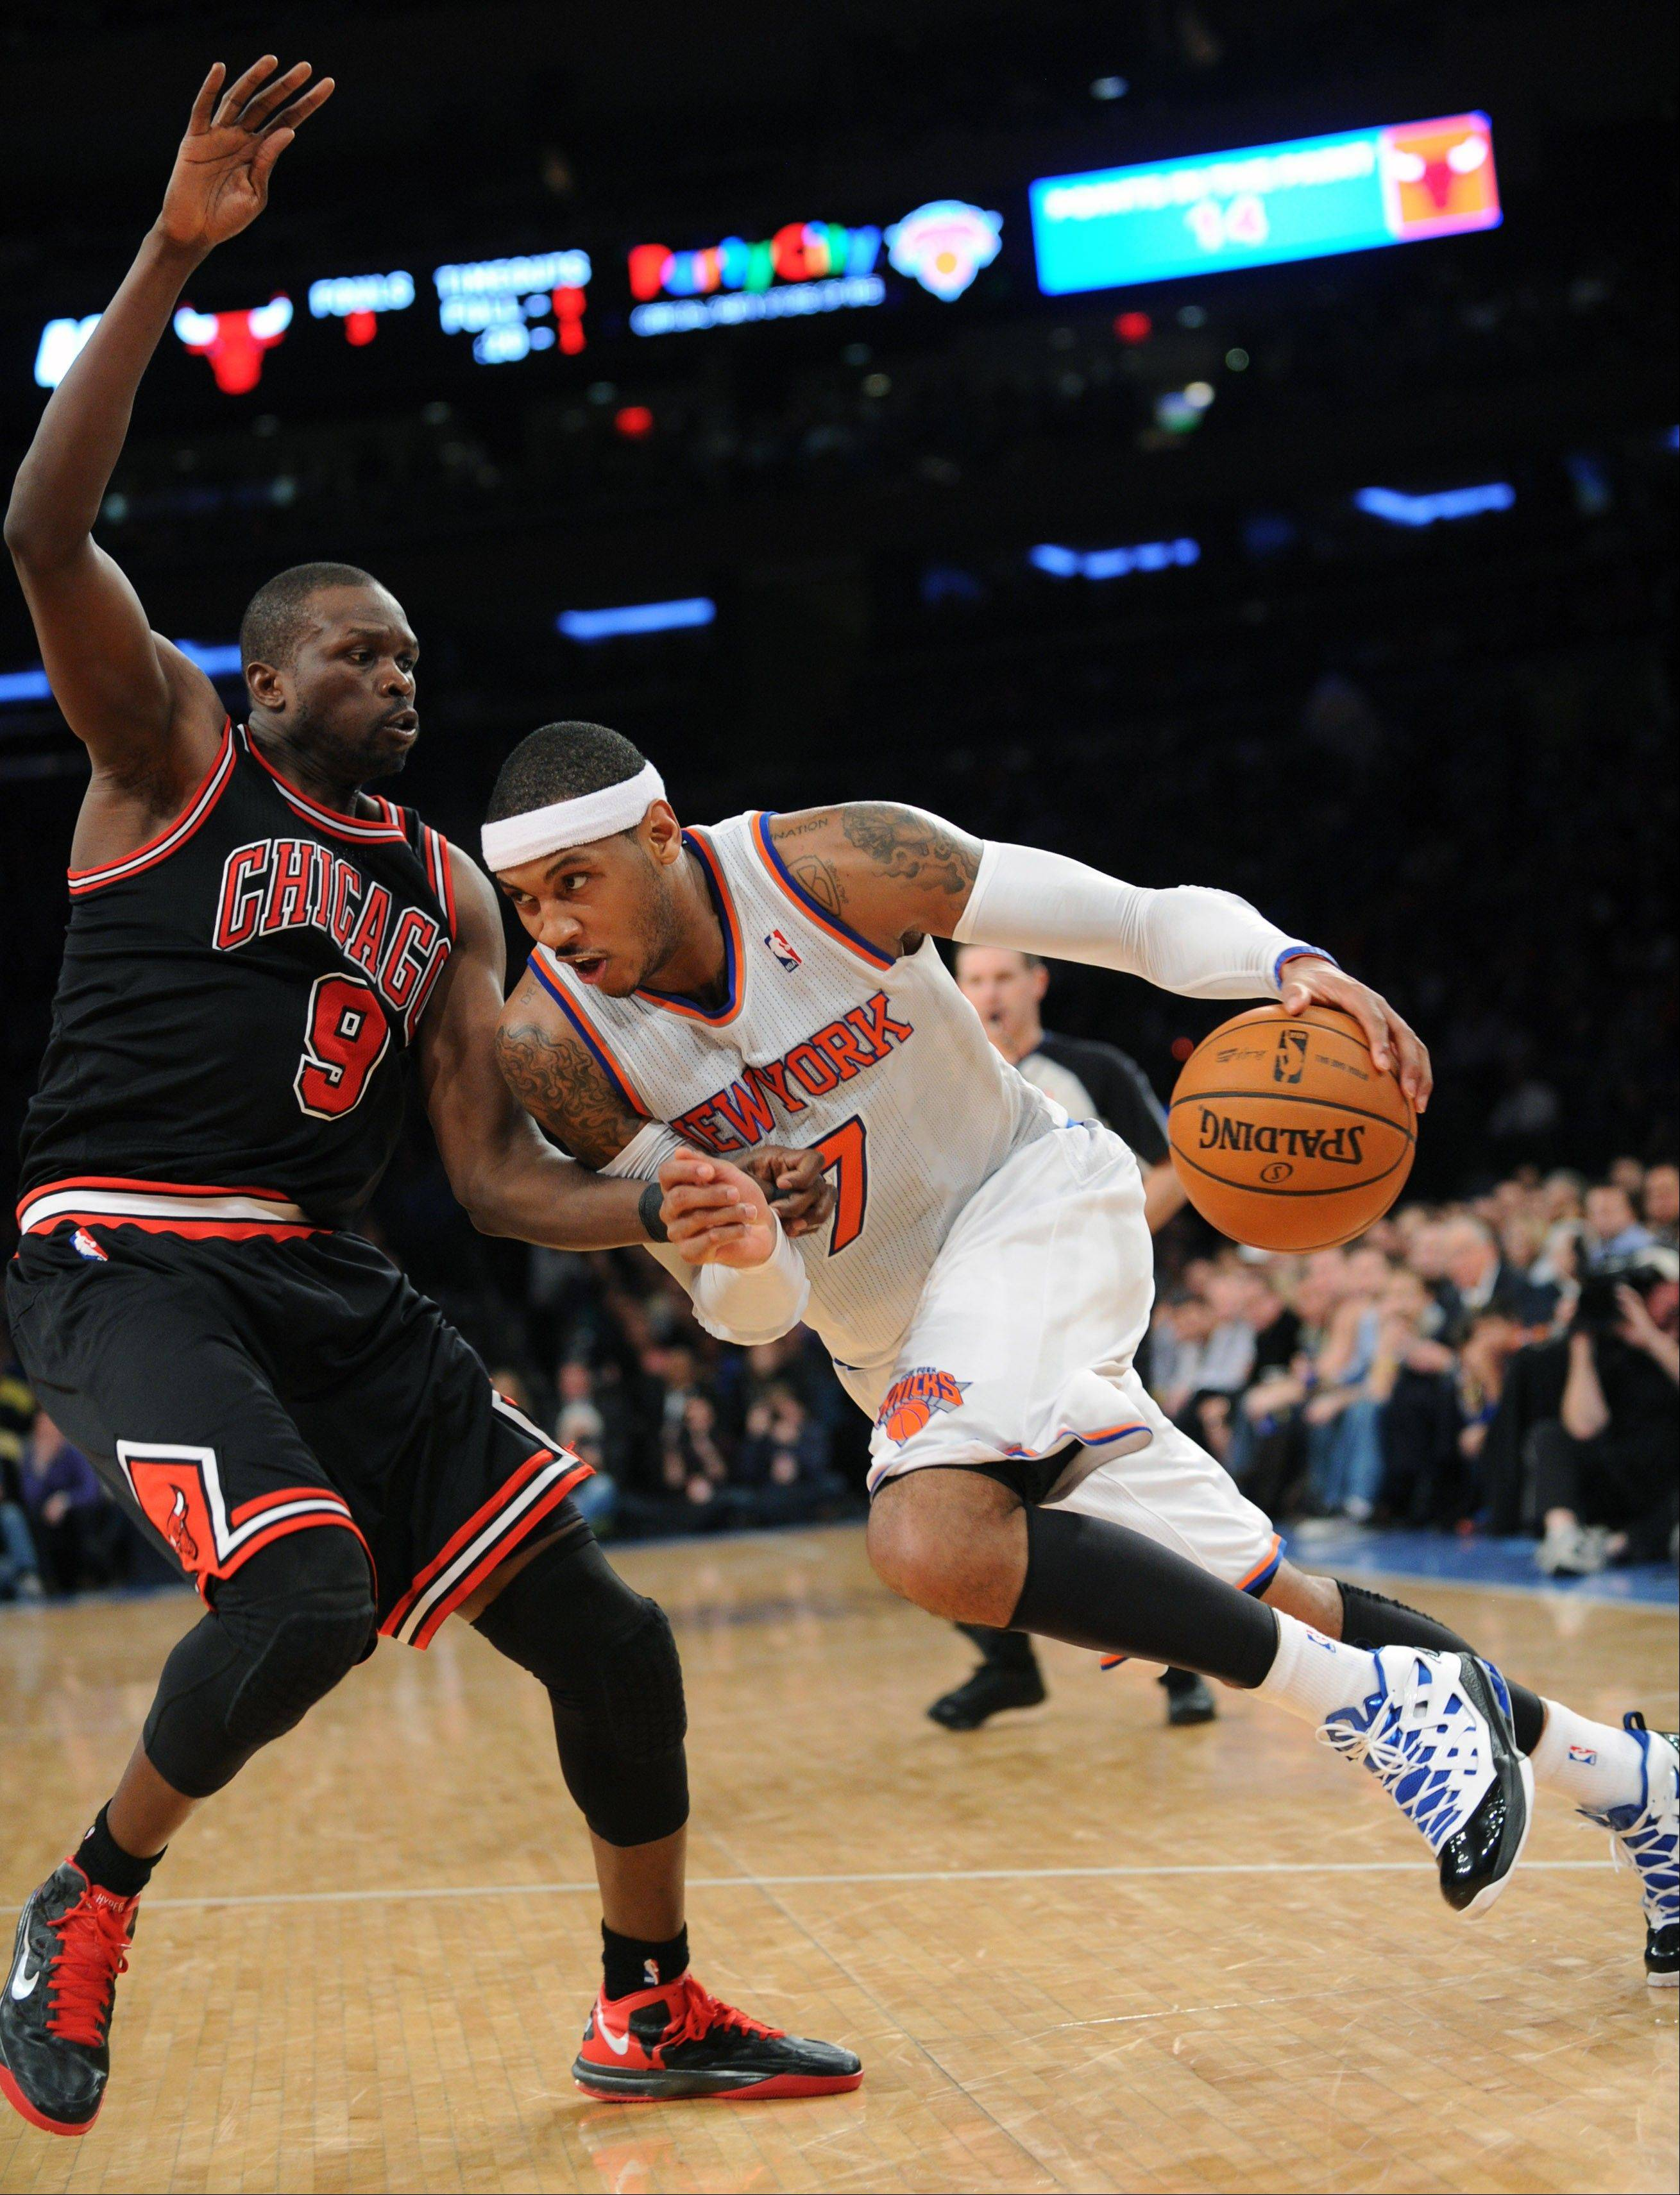 New York Knicks' Carmelo Anthony, right, attempts to drive to the basket as he is guarded by Chicago Bulls' Luol Deng, of Sudan, during the first half of an NBA basketball game Friday, Jan. 11, 2013, at Madison Square Garden in New York.